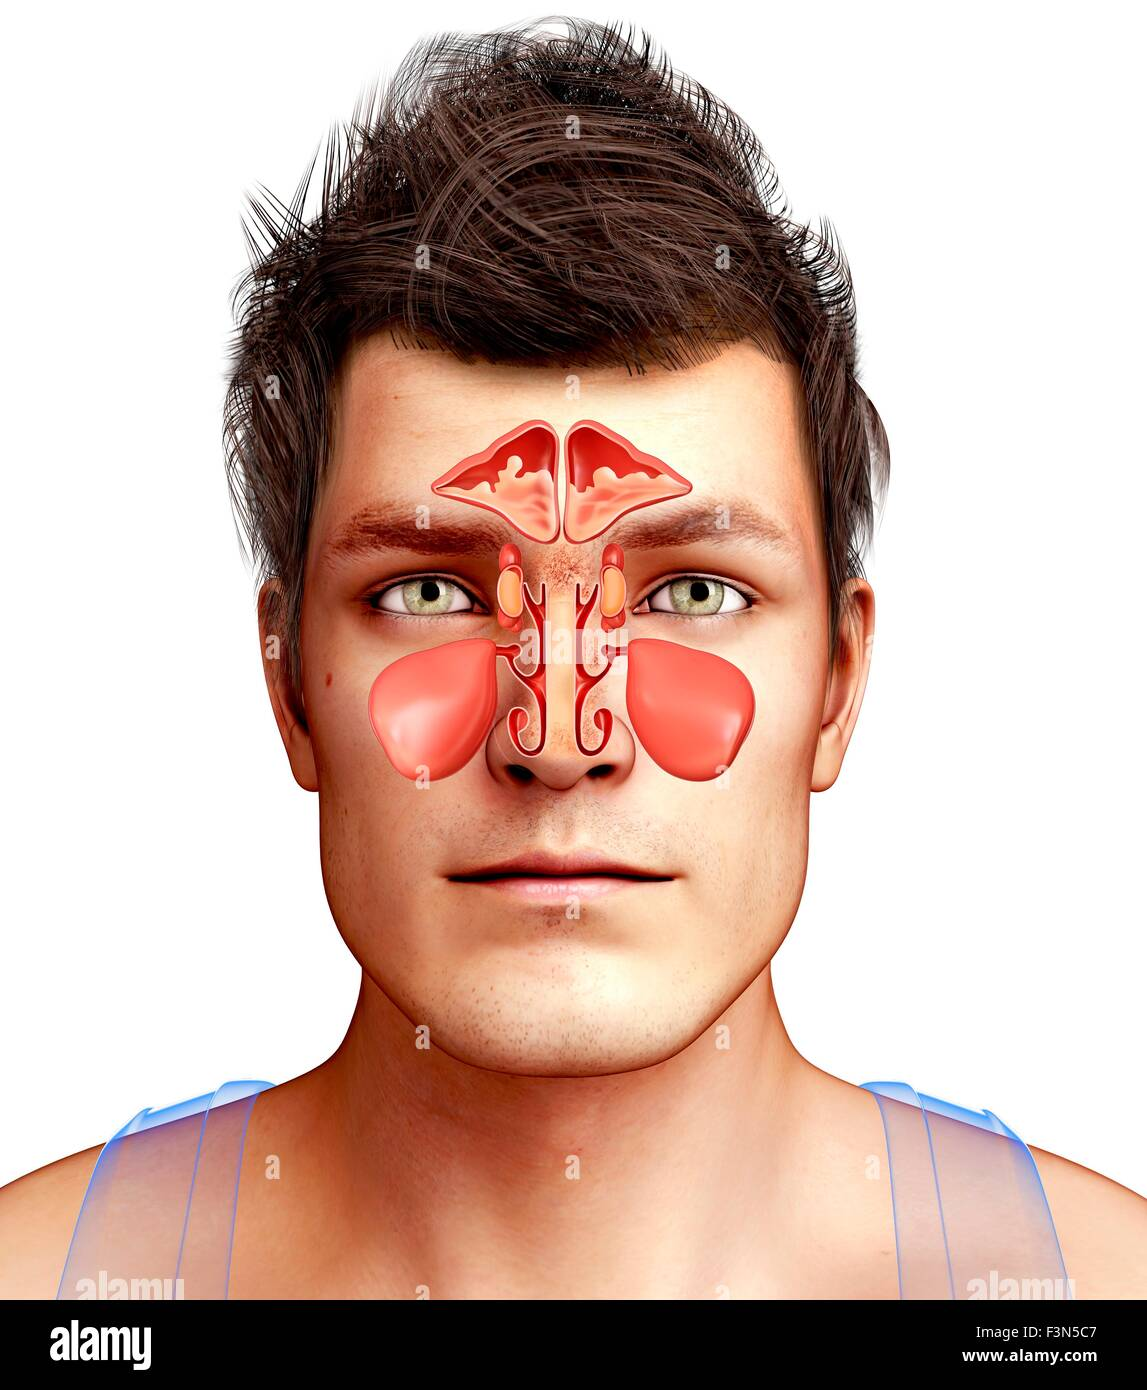 Nose And Anatomy And 3d Stock Photos & Nose And Anatomy And 3d Stock ...